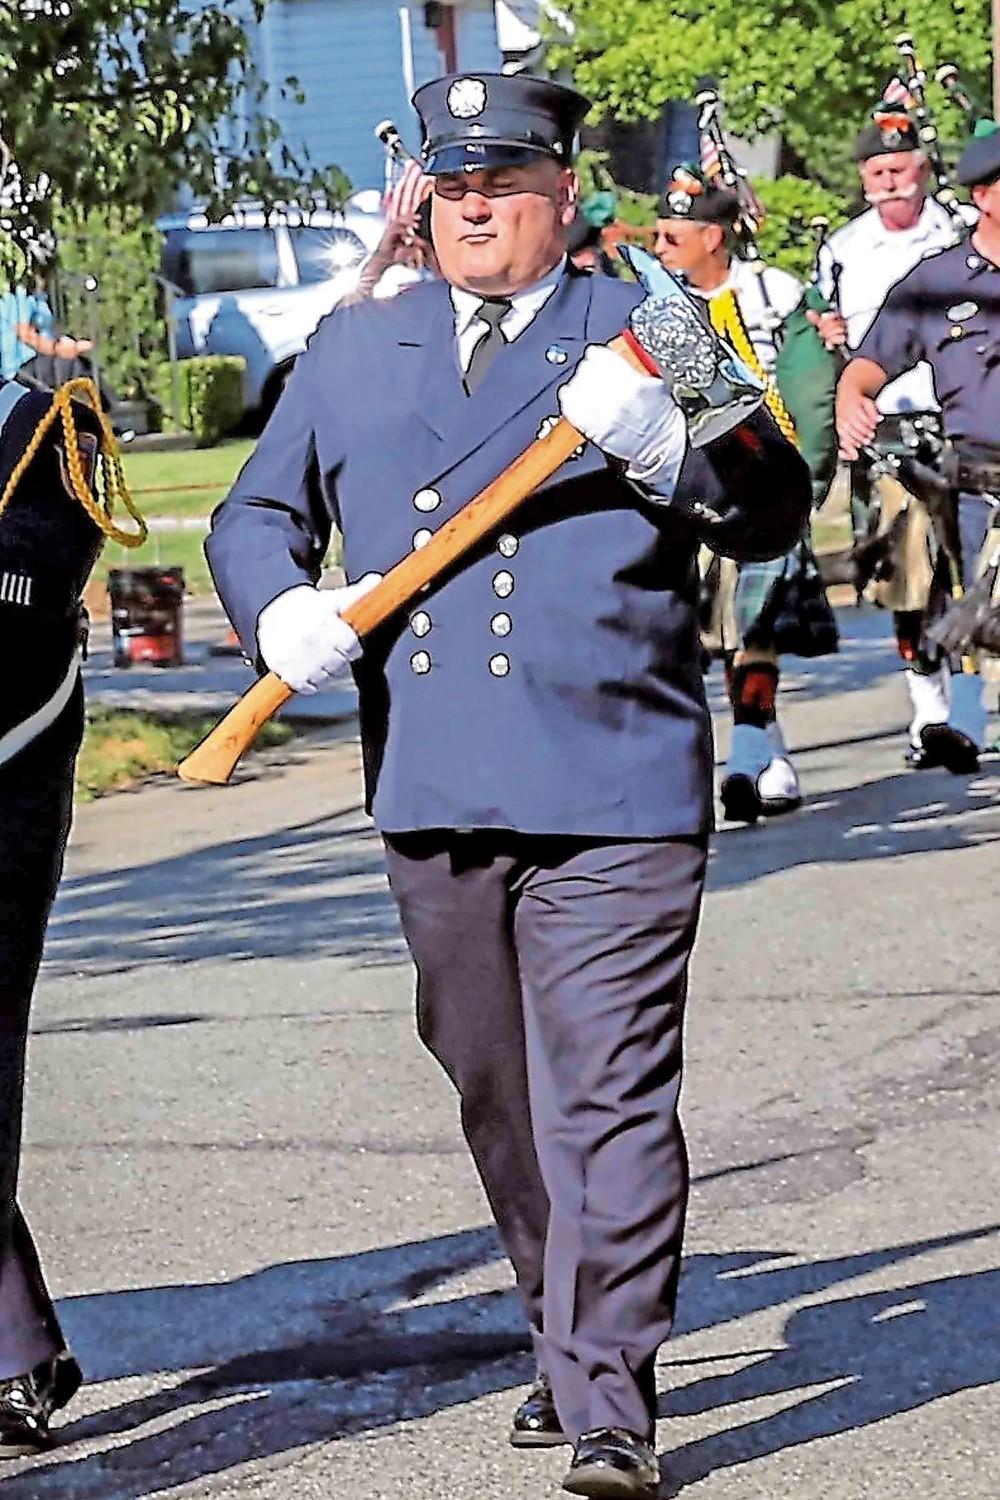 George Scheer served as a member the Malverne Fire Department for nearly 30 years.